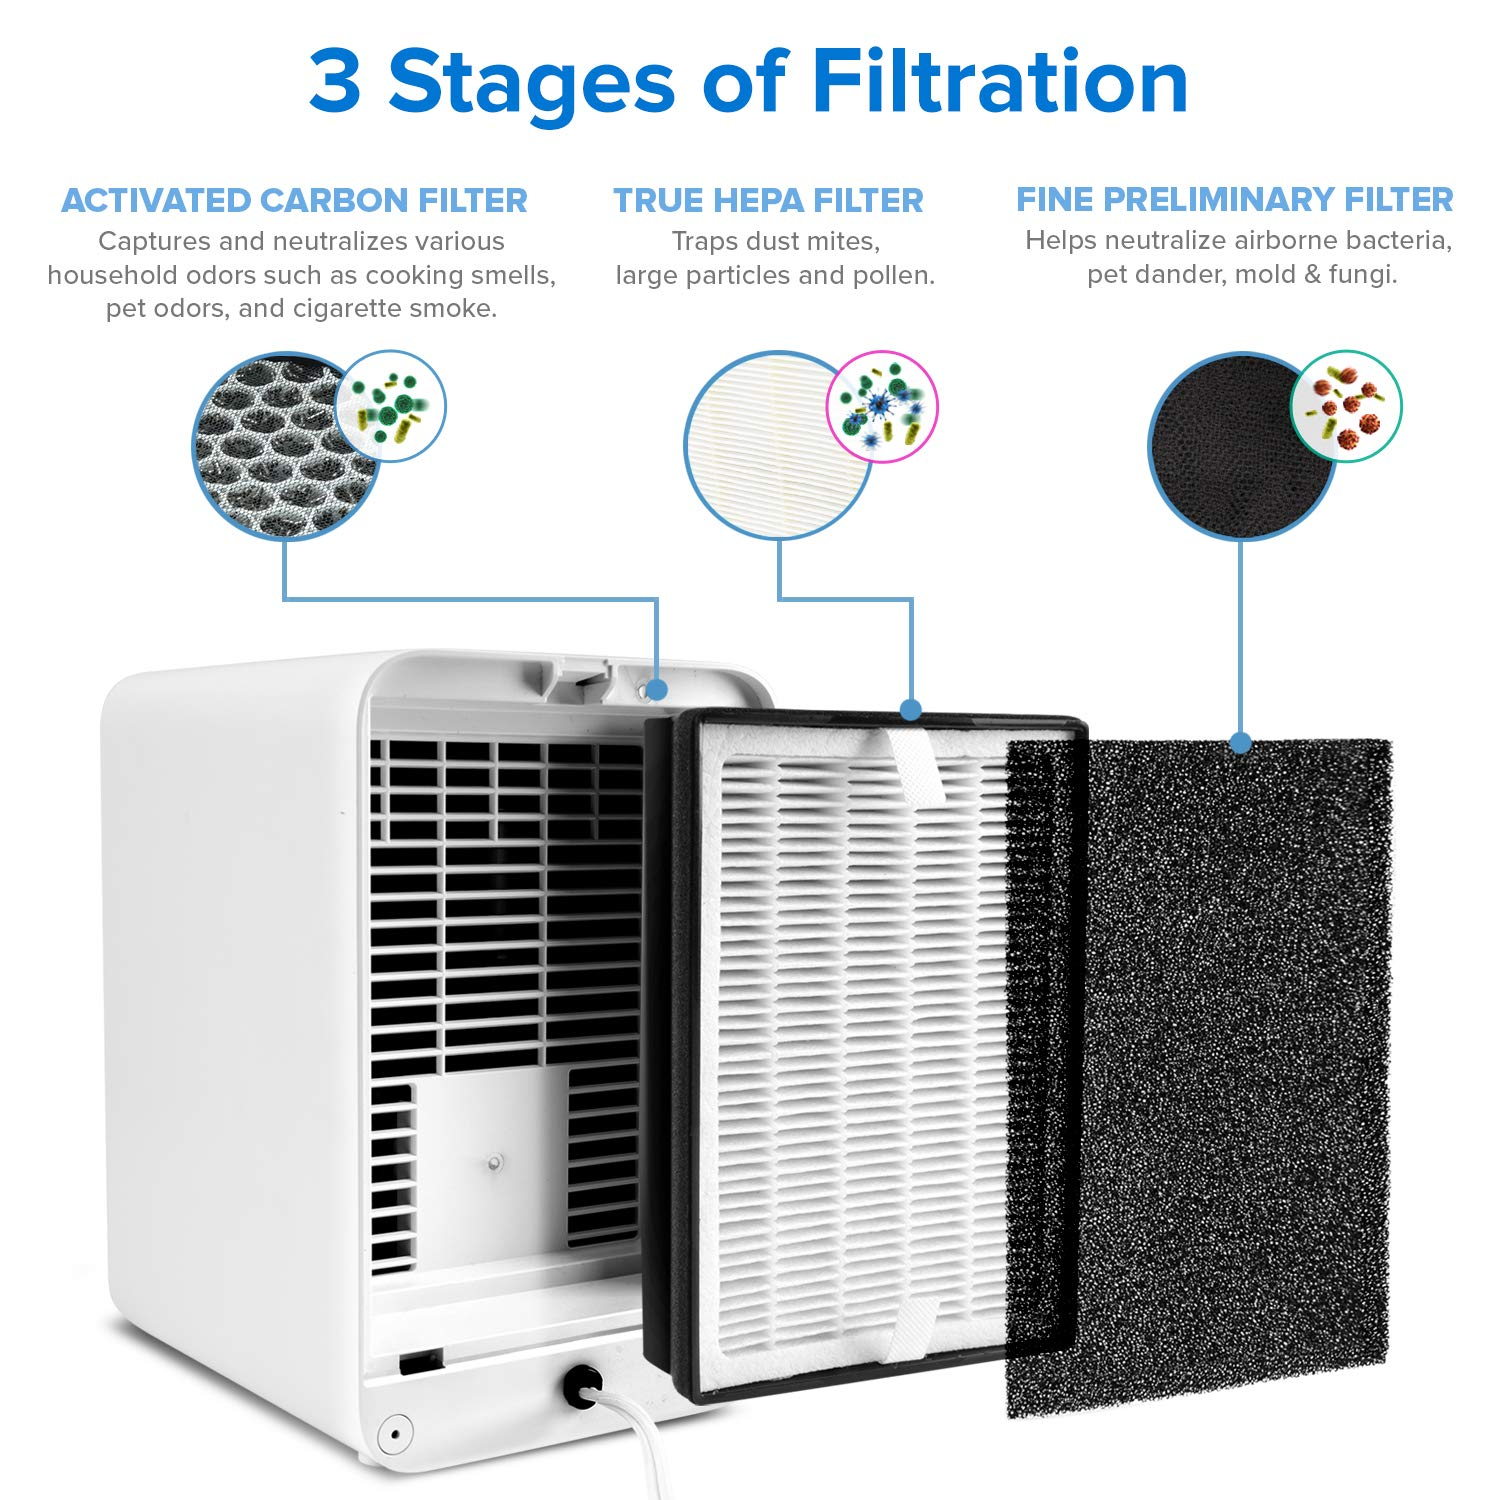 levoit lv h126 air purifier trusted review in 2019. Black Bedroom Furniture Sets. Home Design Ideas